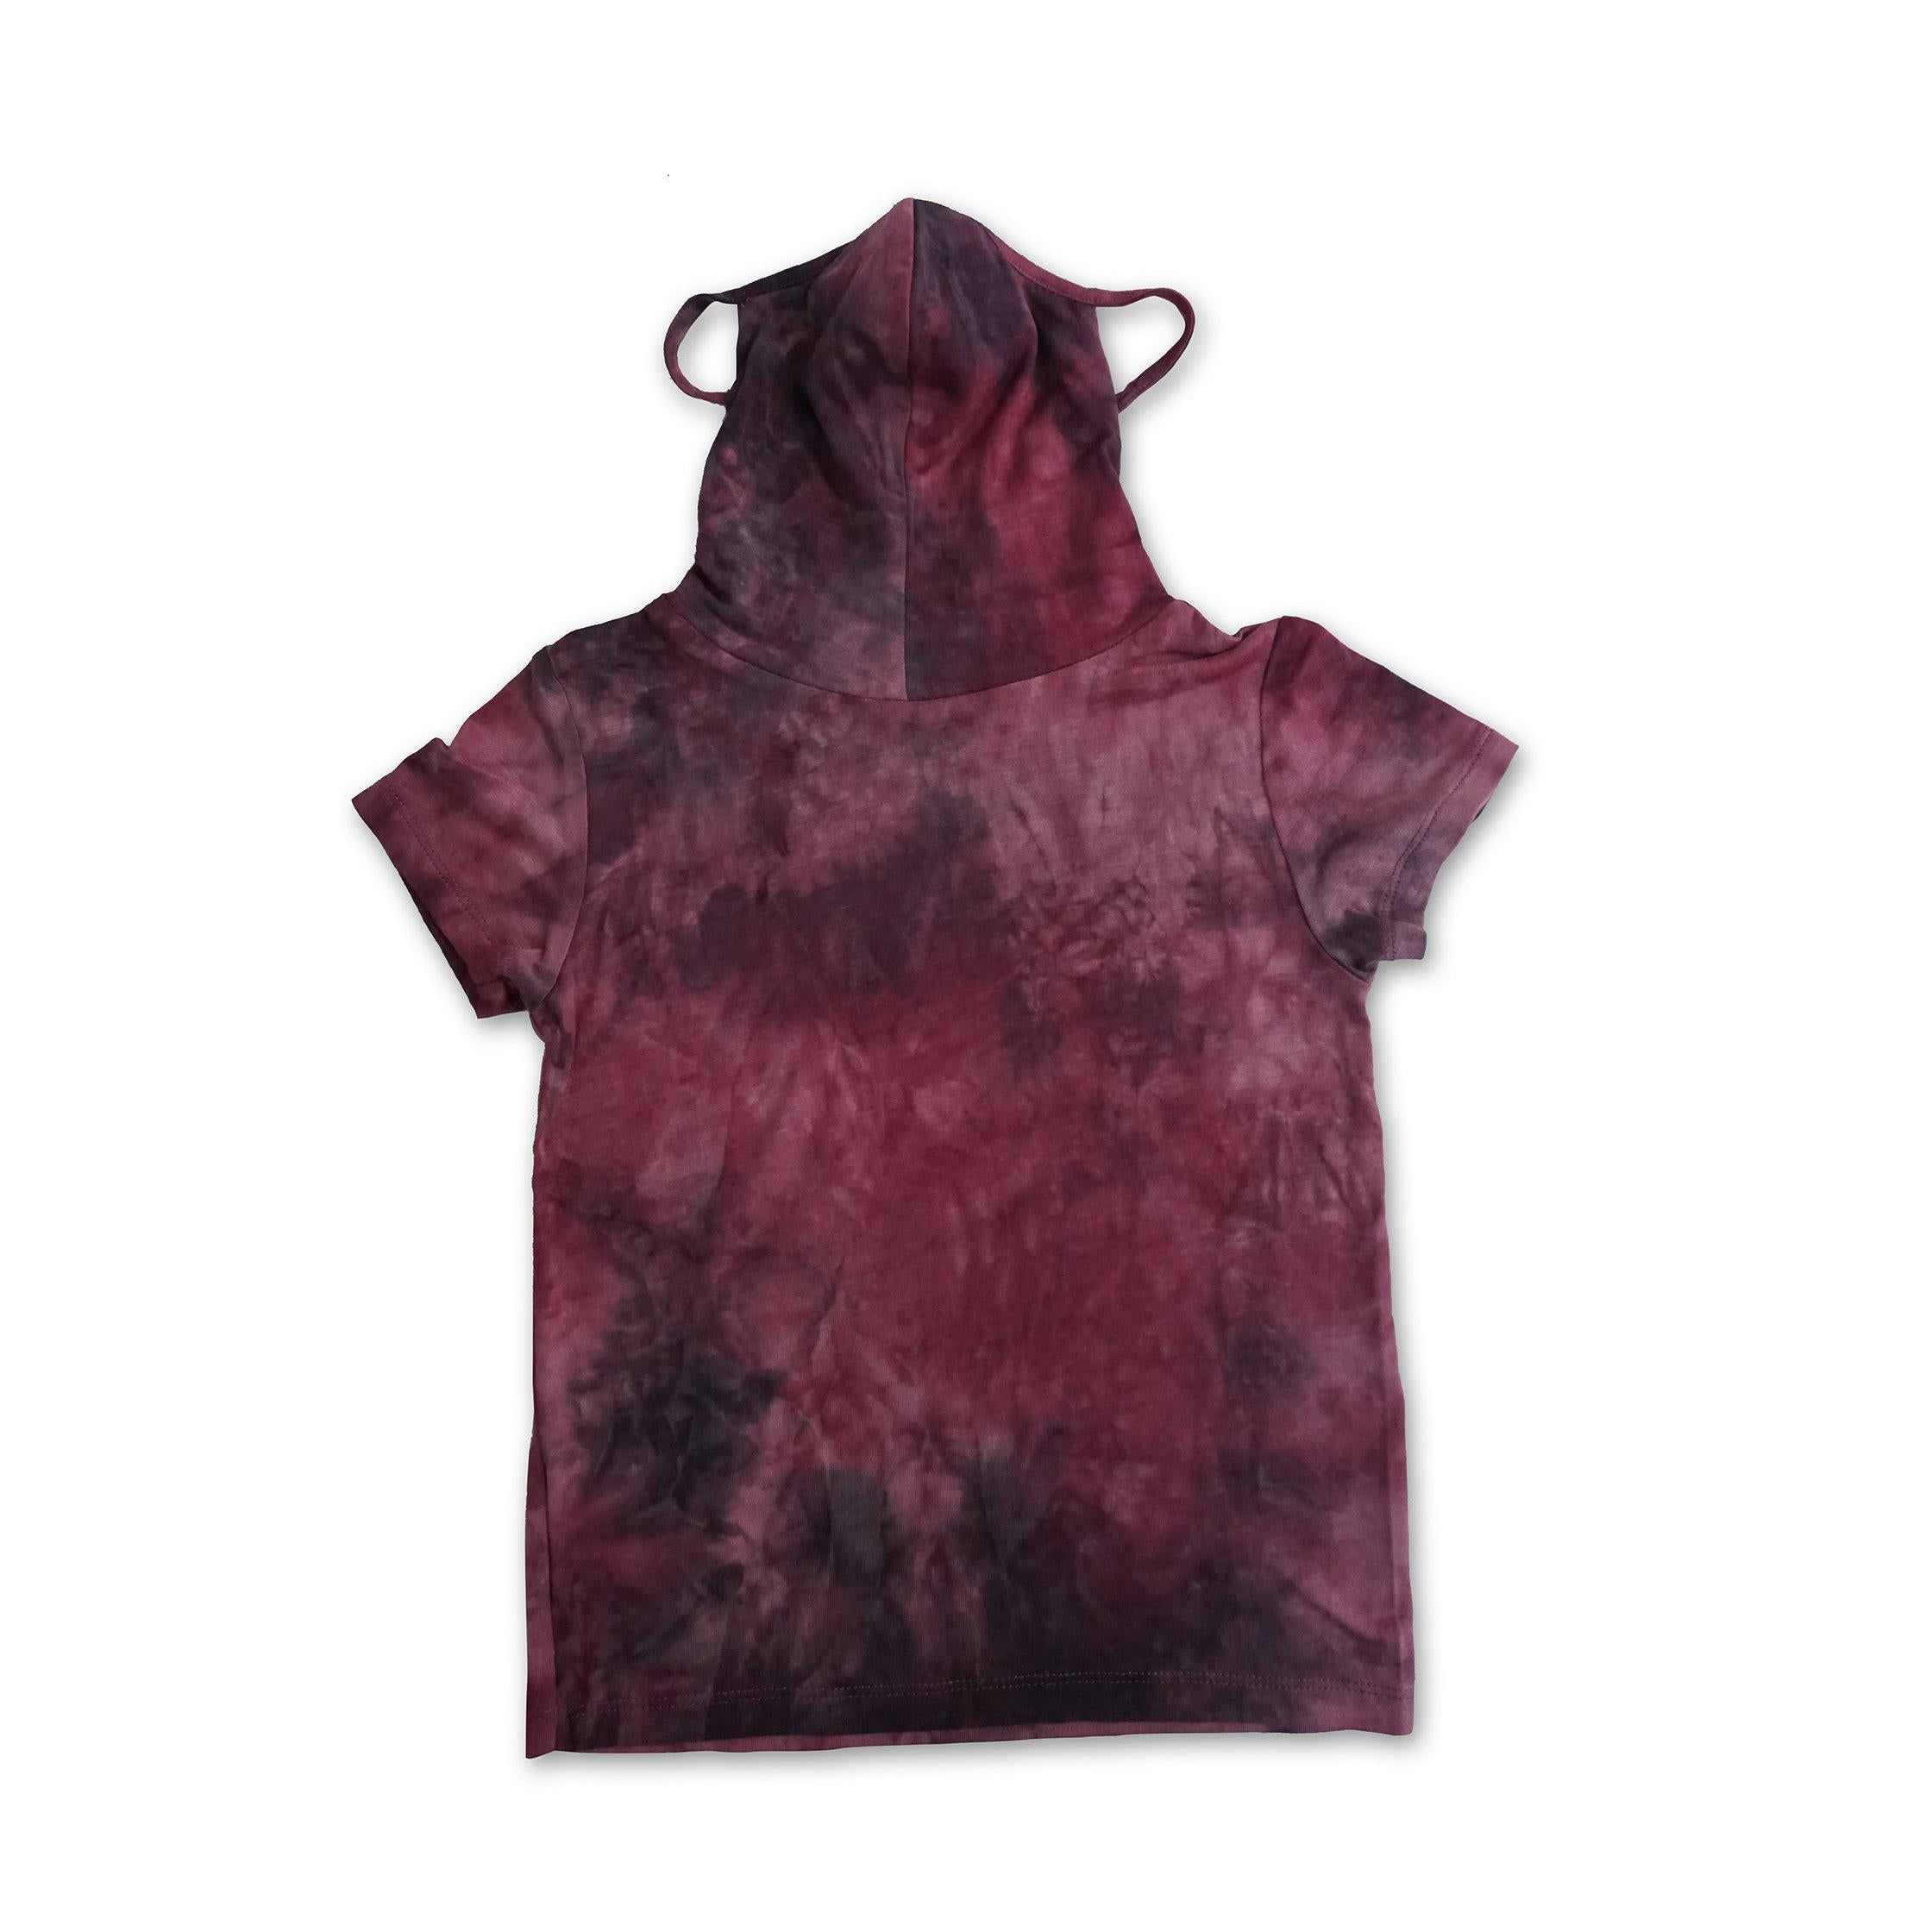 Kids Short Sleeve Pink Purple Tie-dye #6 Shmask™